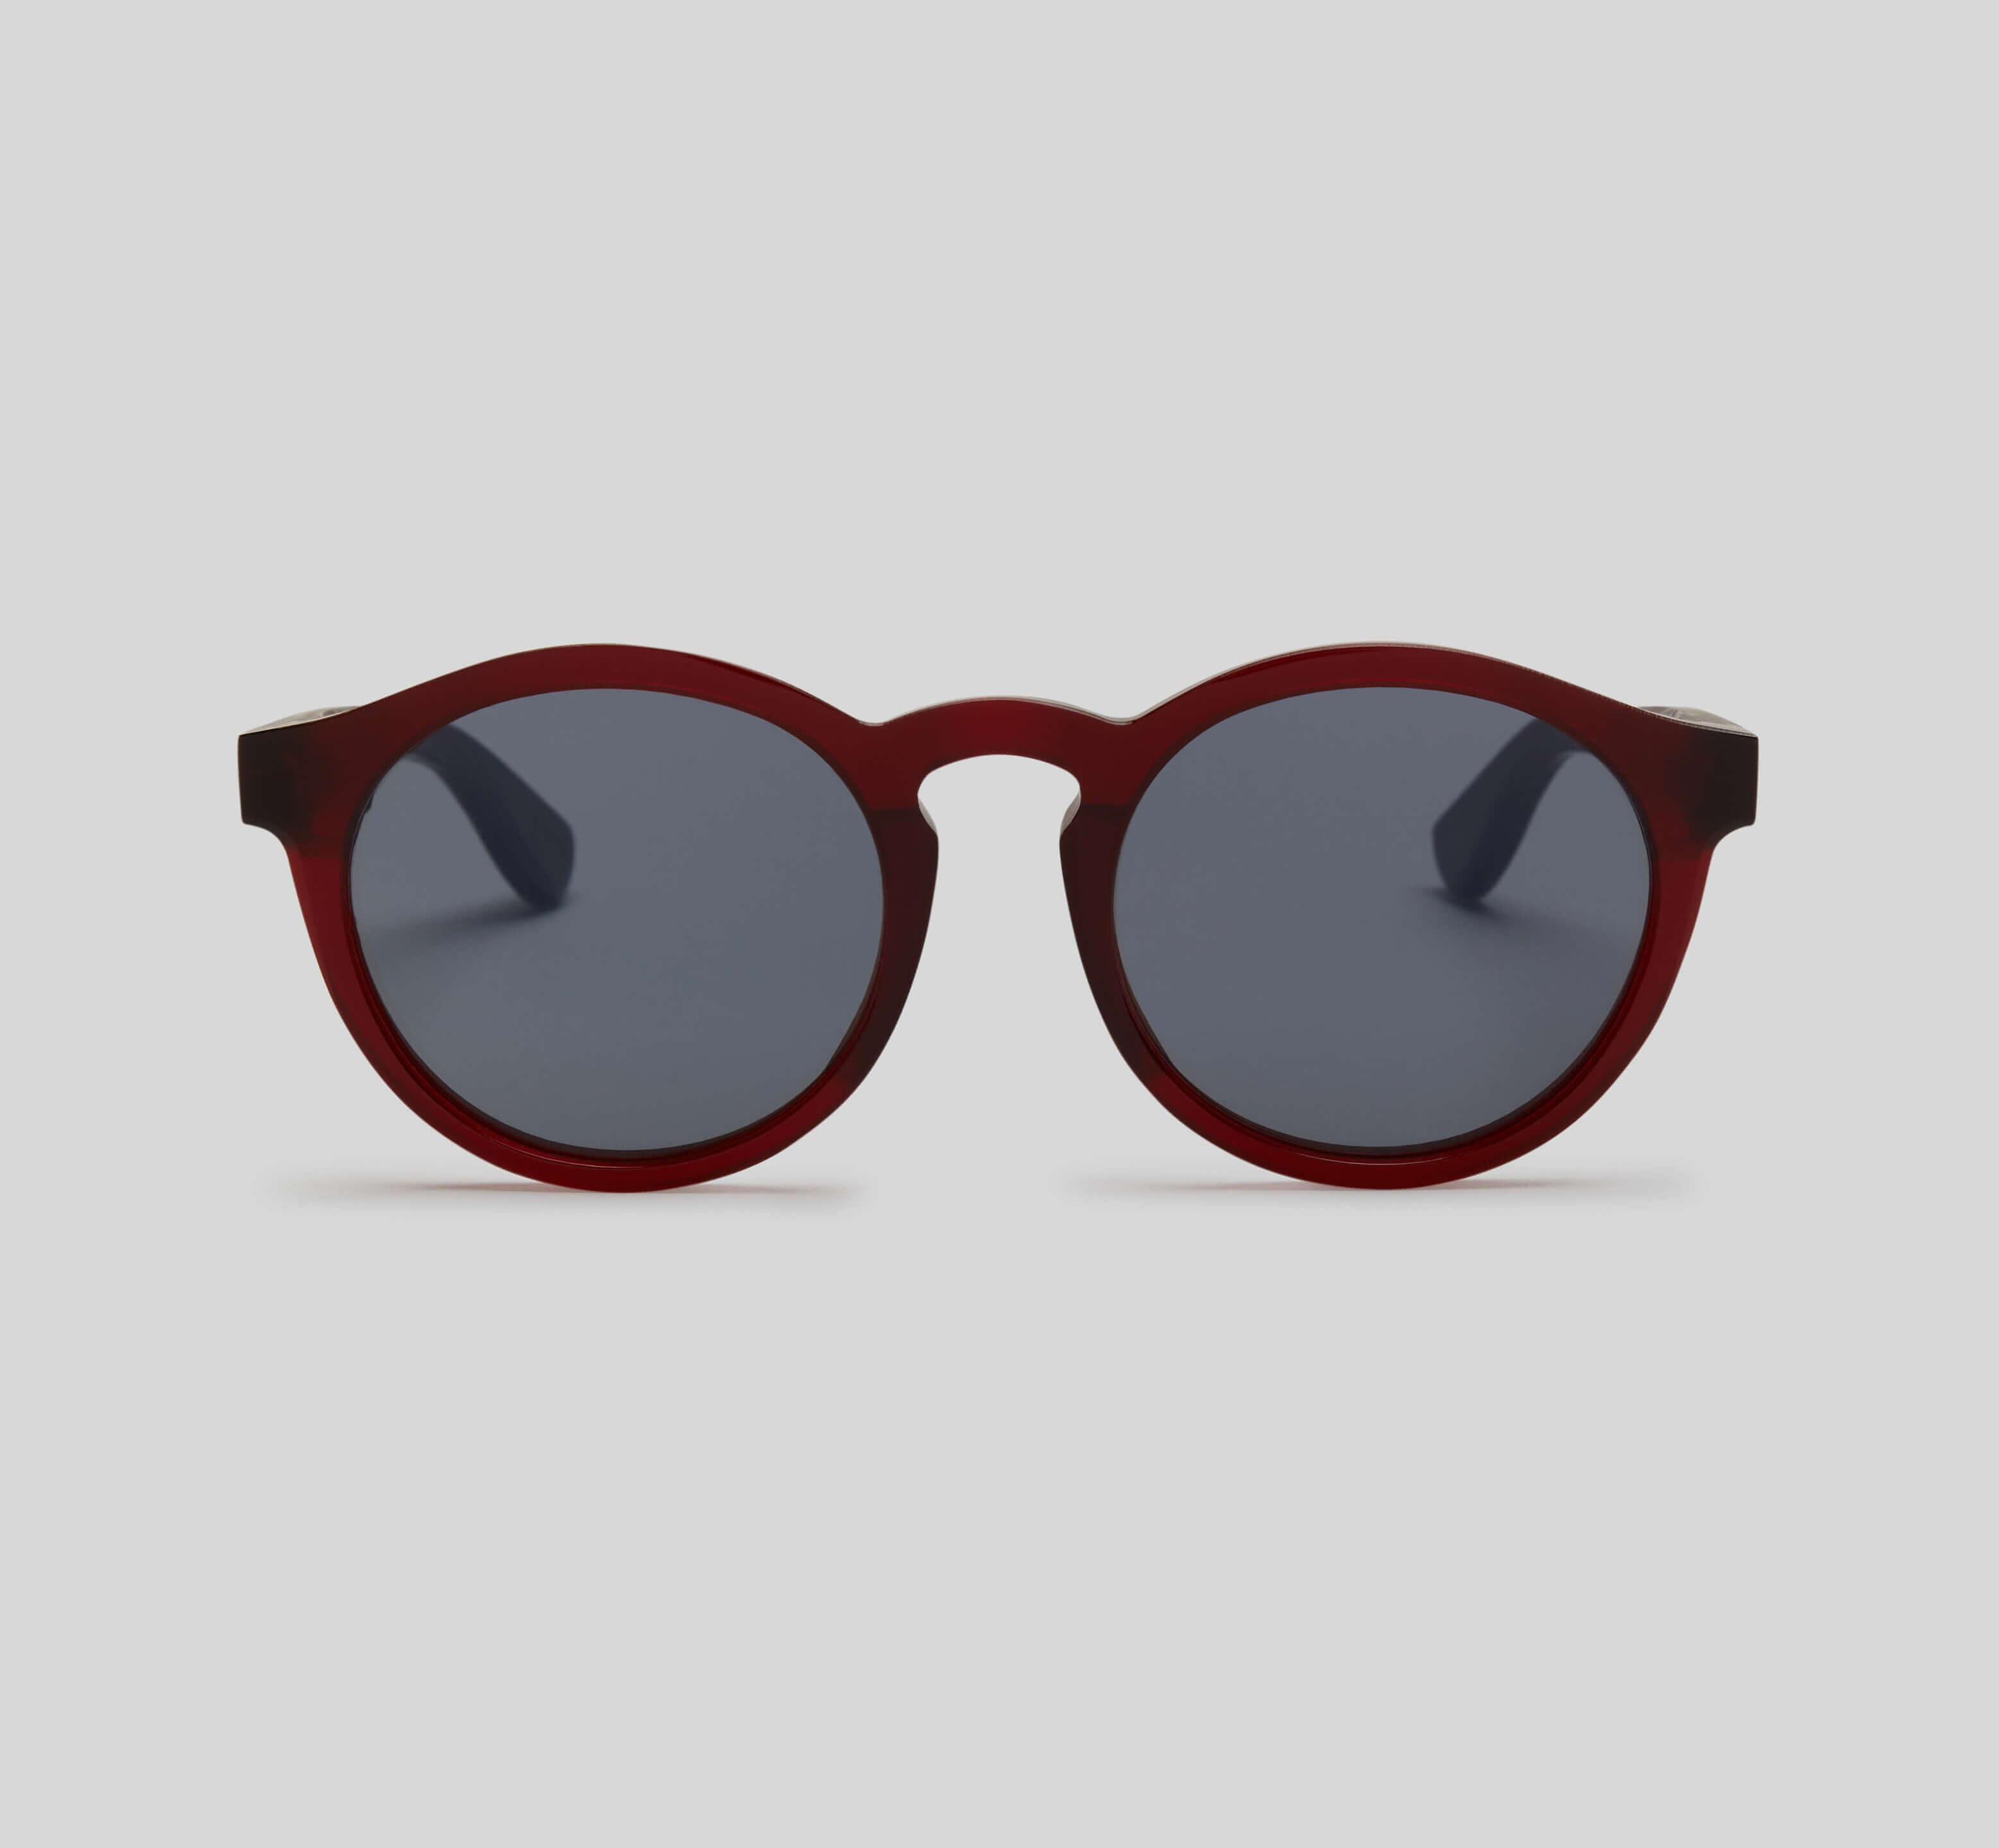 Round red sunglasses eco friendly sustainable fashion made in Japan unisex sunglasses for men sunglasses for women and blue light filter